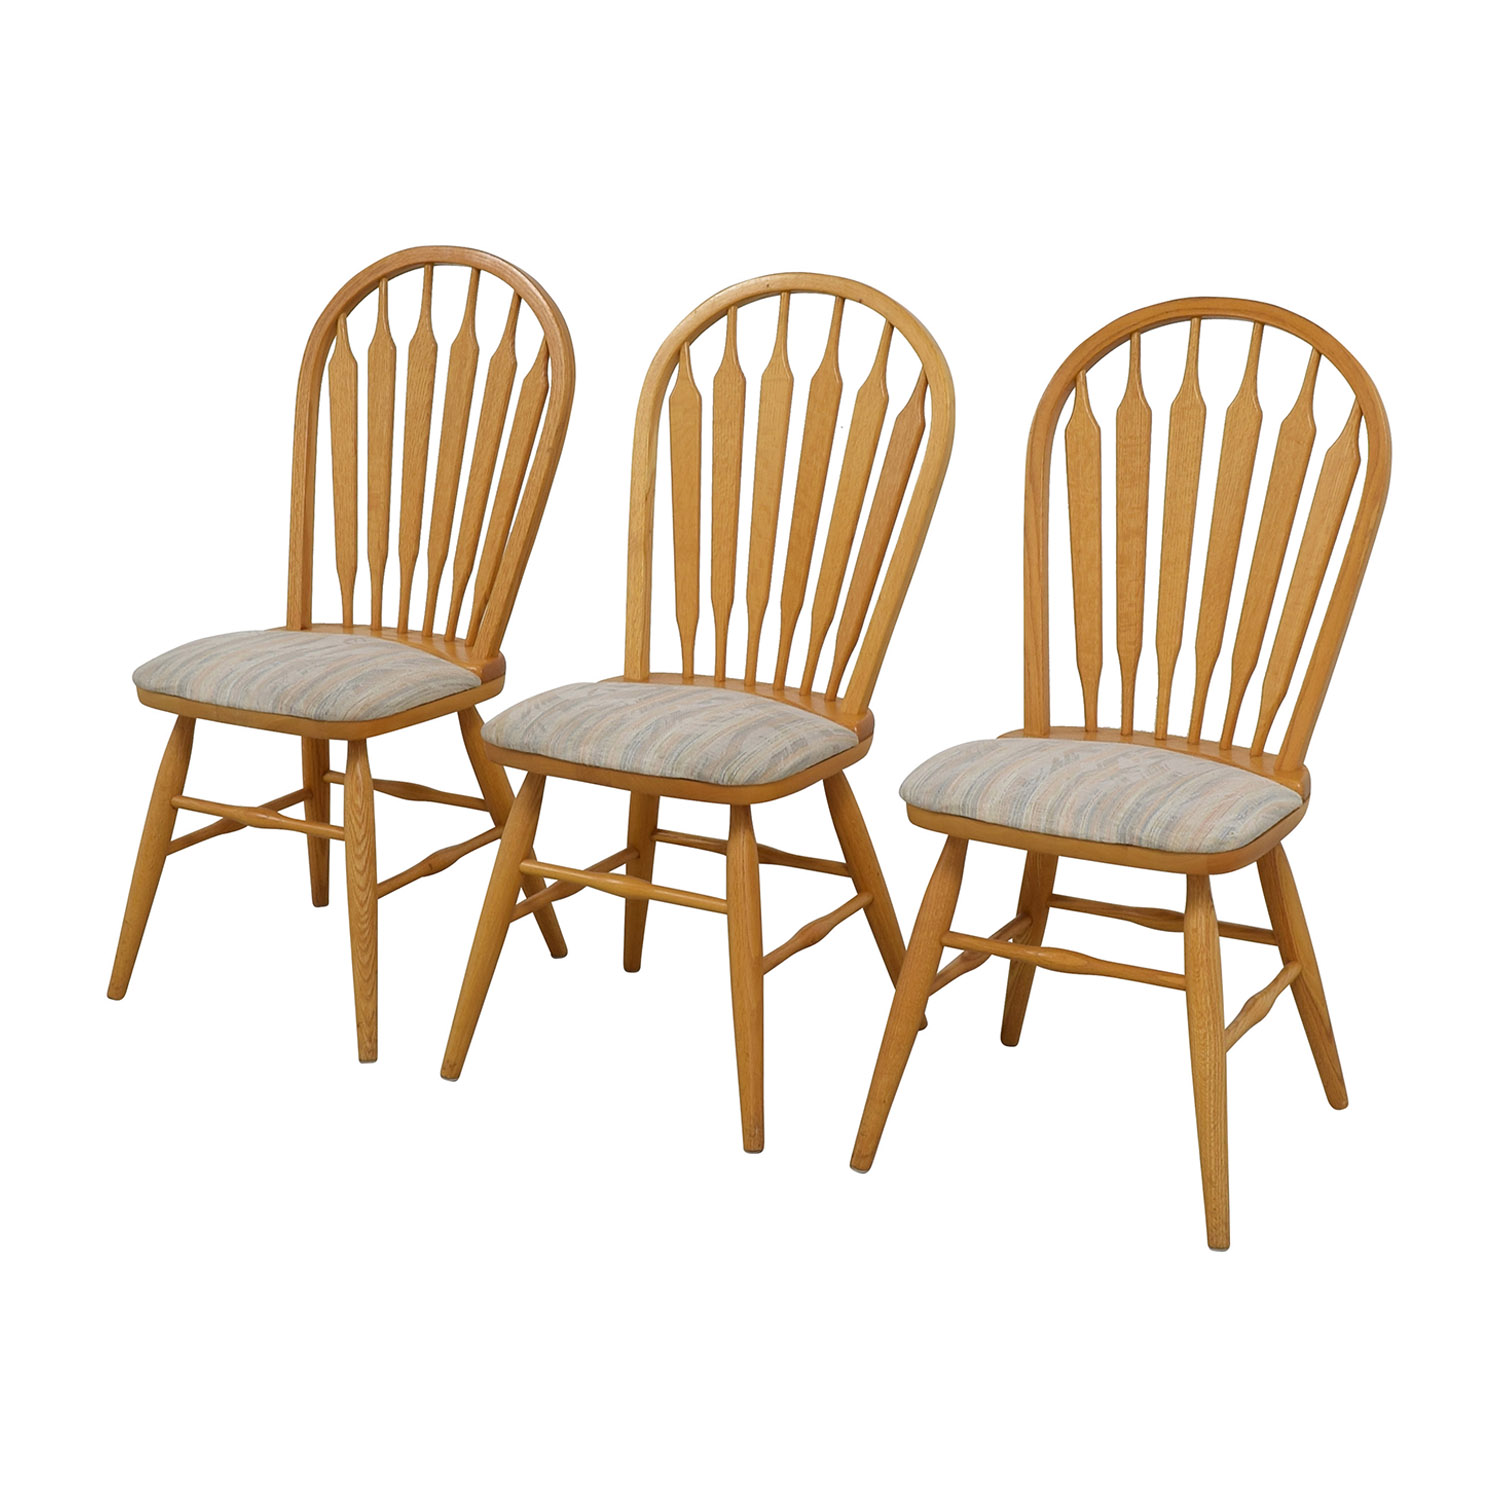 Dinette Sets For Sale: Dinaire Dinaire Kitchen Chairs With Cushions